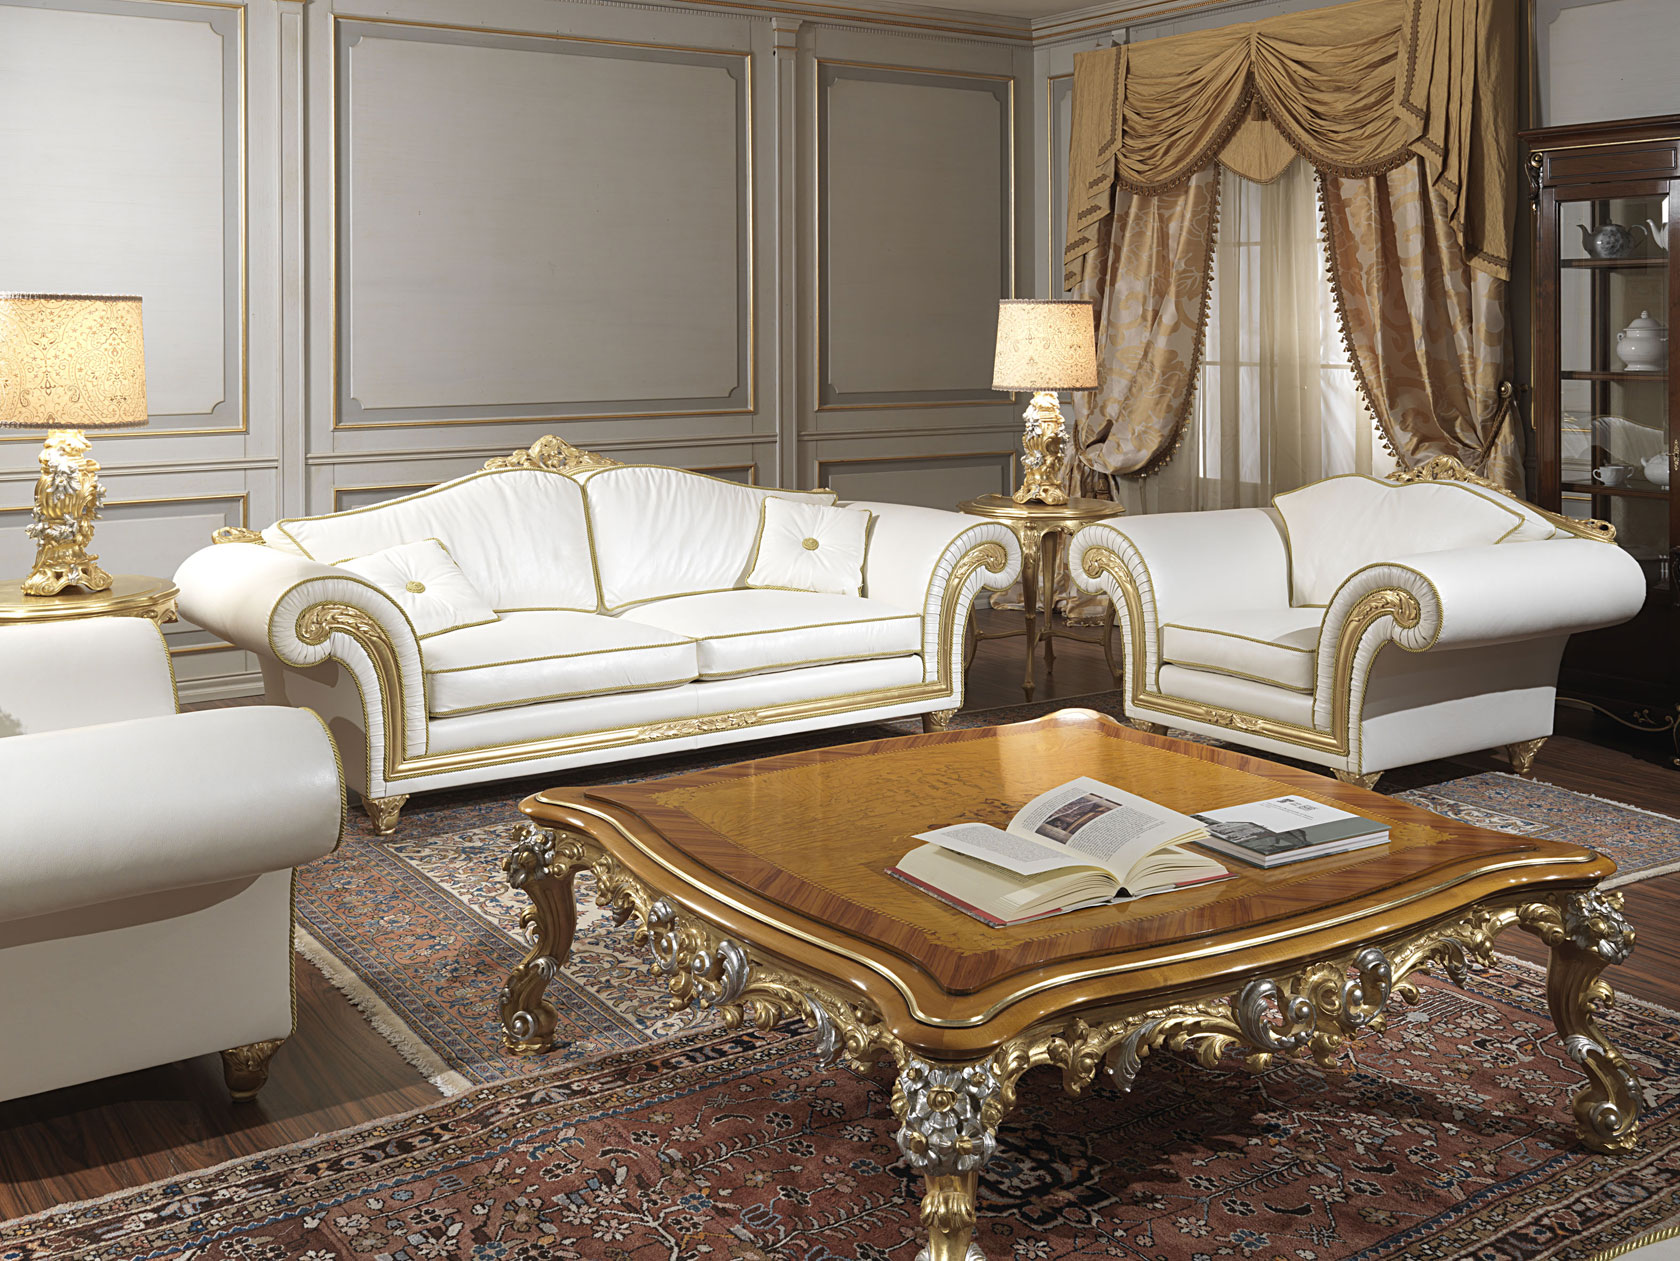 Classic living room Imperial with sofa and armchairs